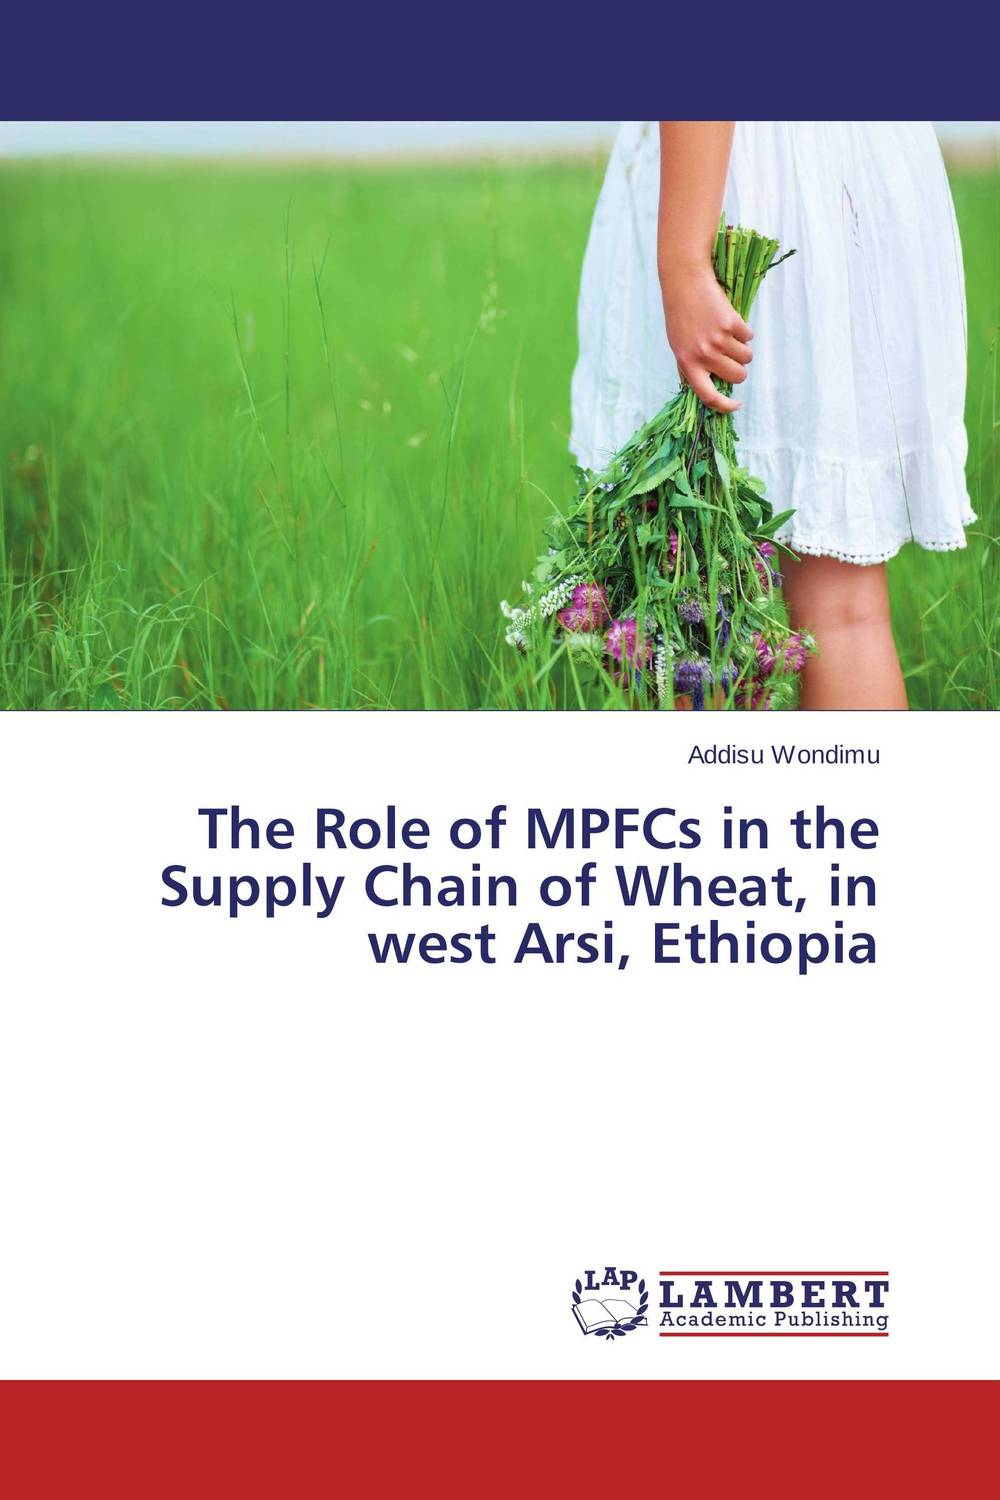 The Role of MPFCs in the Supply Chain of Wheat, in west Arsi, Ethiopia role of line delivery performance in supply chain management